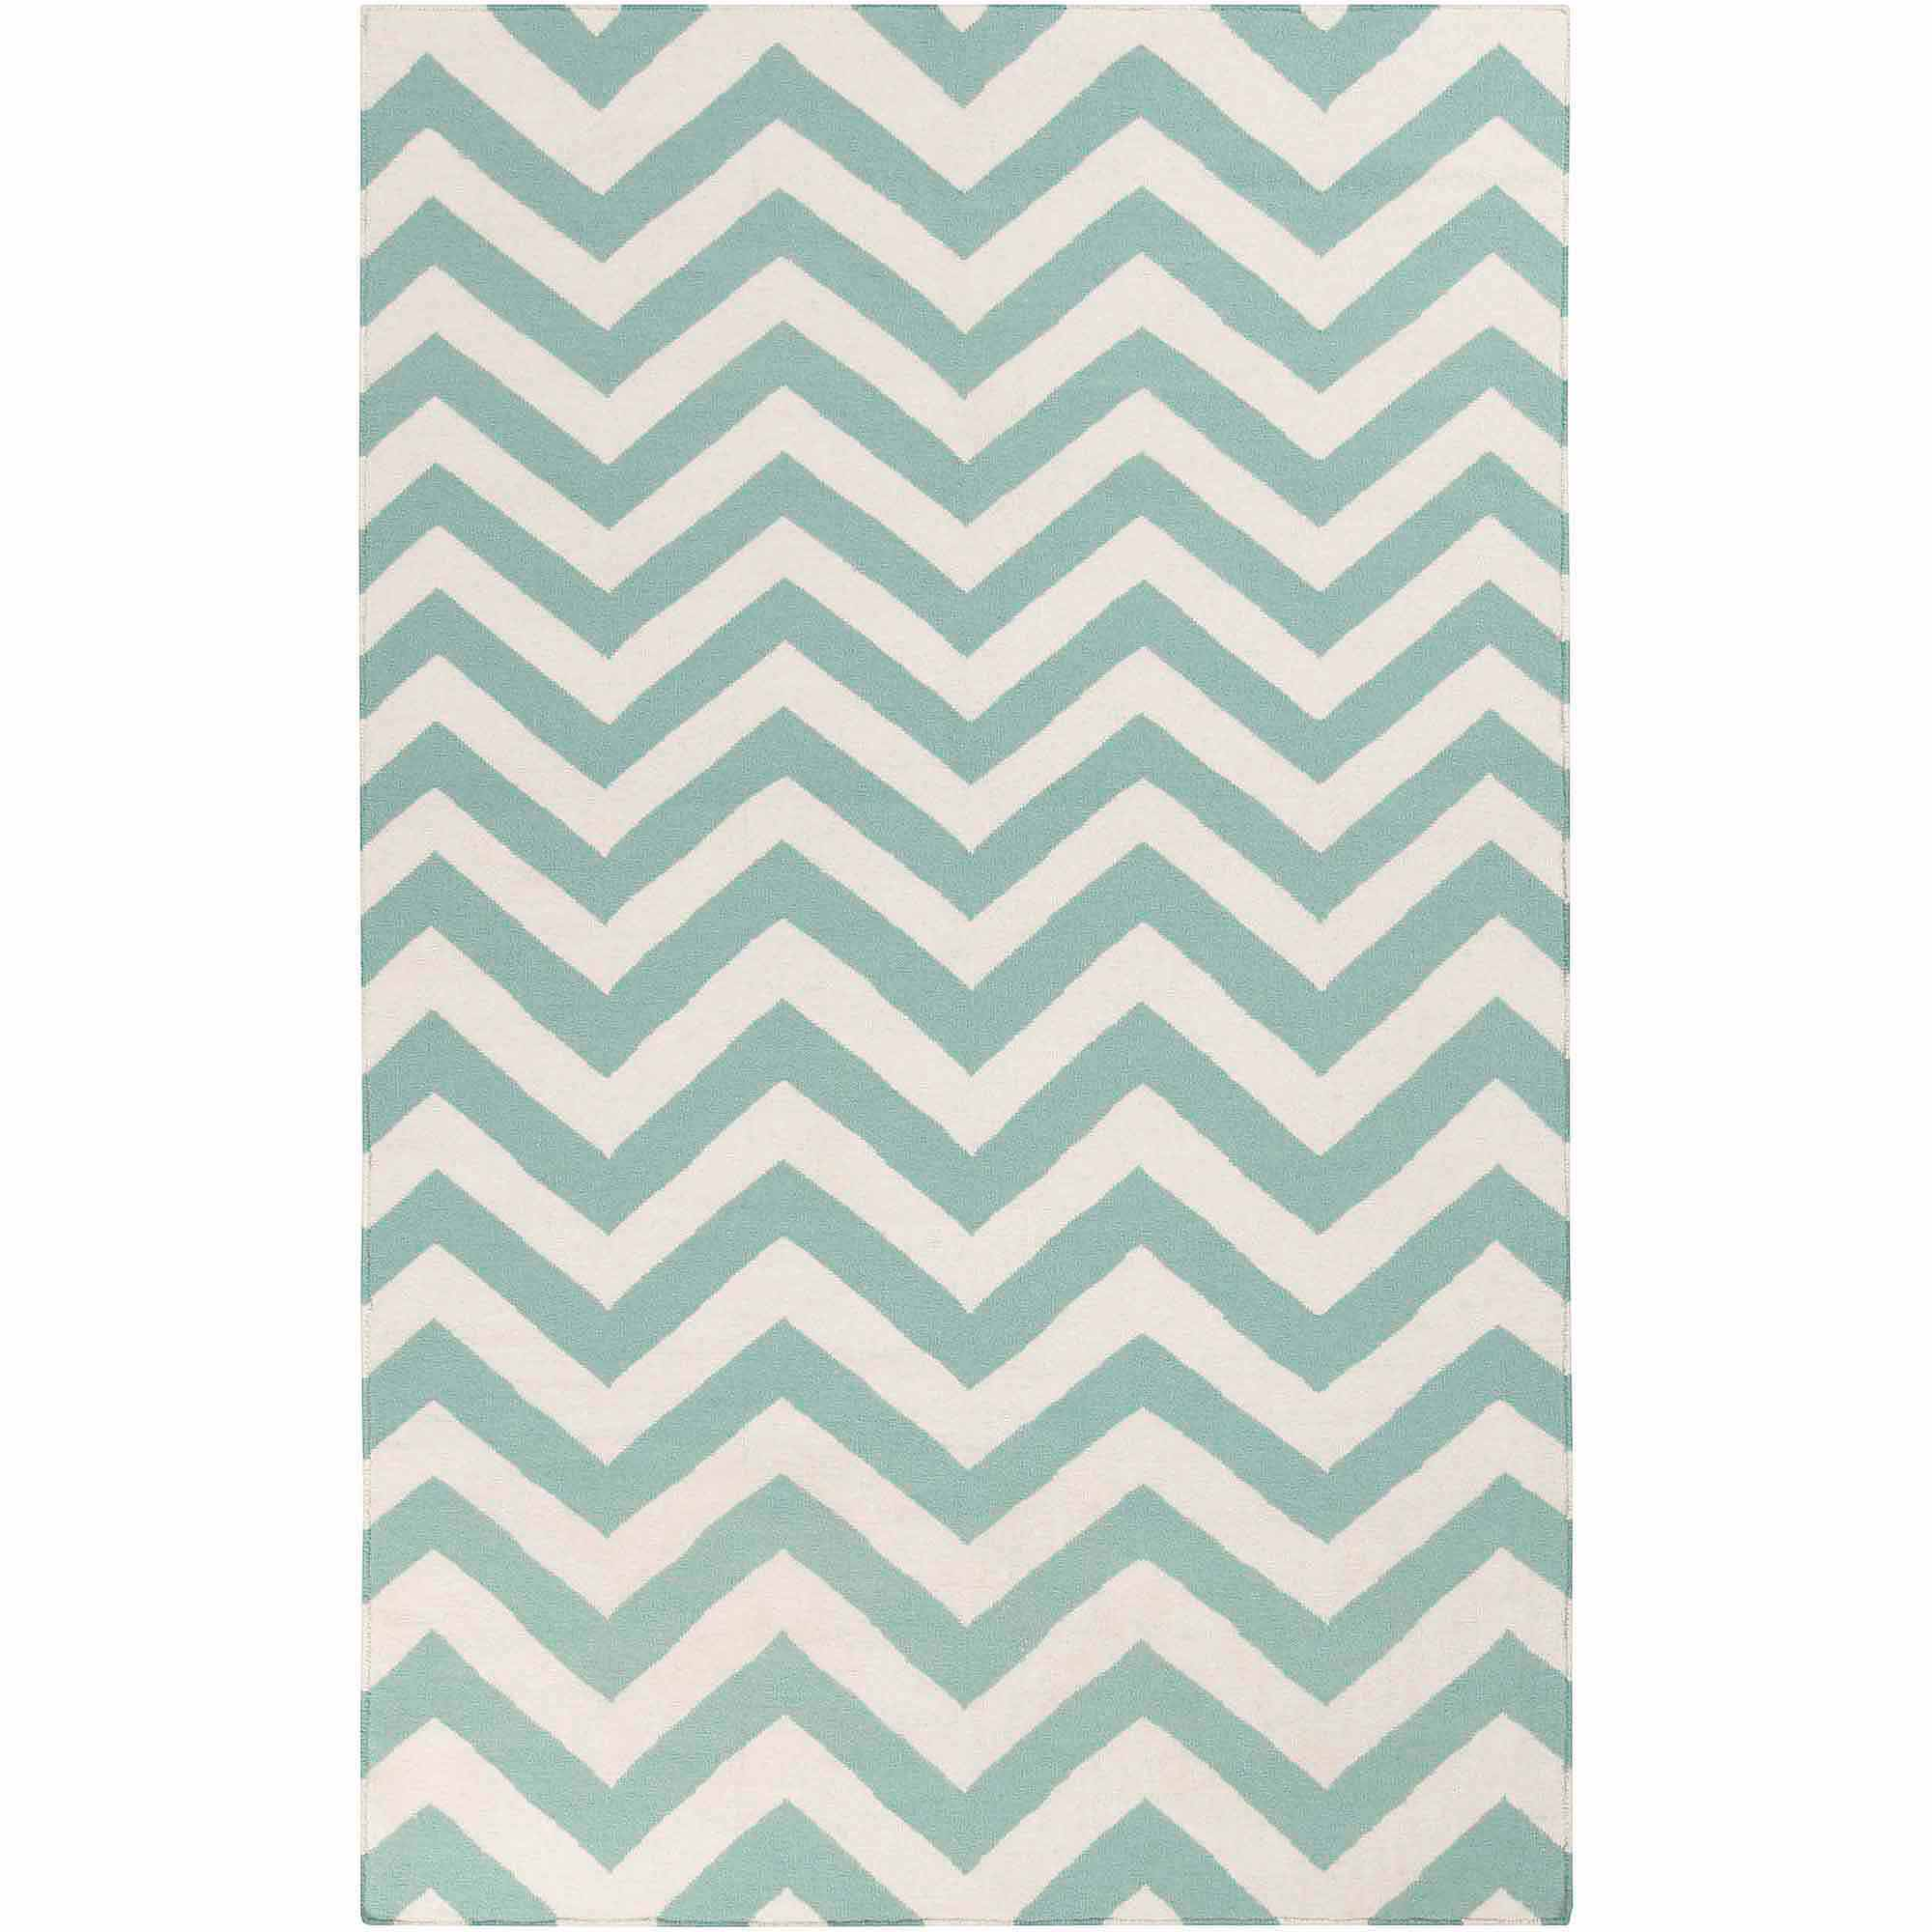 Art of Knot Laughlin Hand Woven Chic Chevron Flatweave Wool Area Rug, Teal